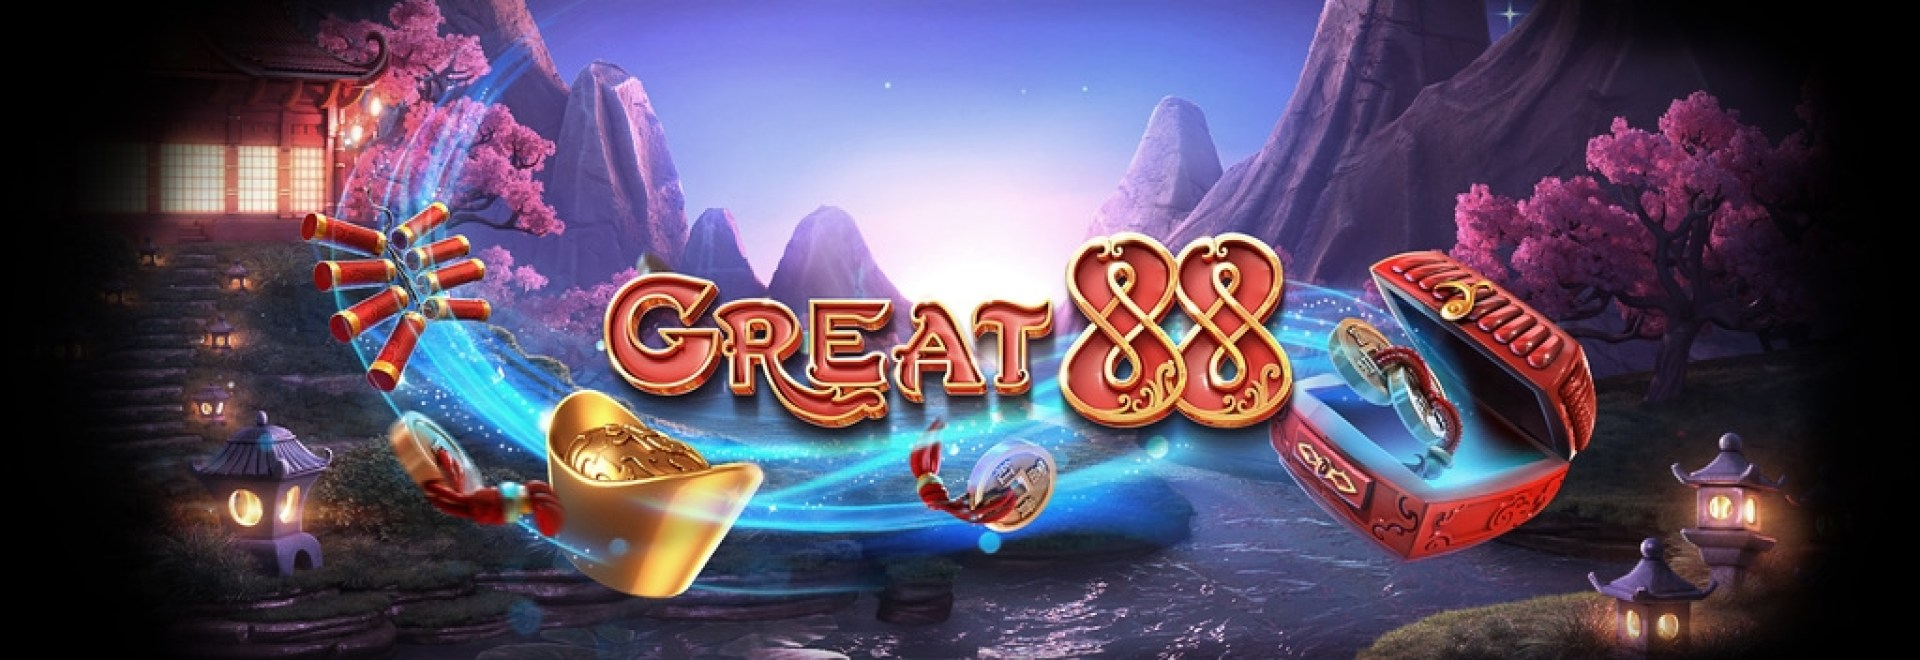 Betsoft Great 88; Black Diamond Casino; Box 24 Casino; Spartan Slots